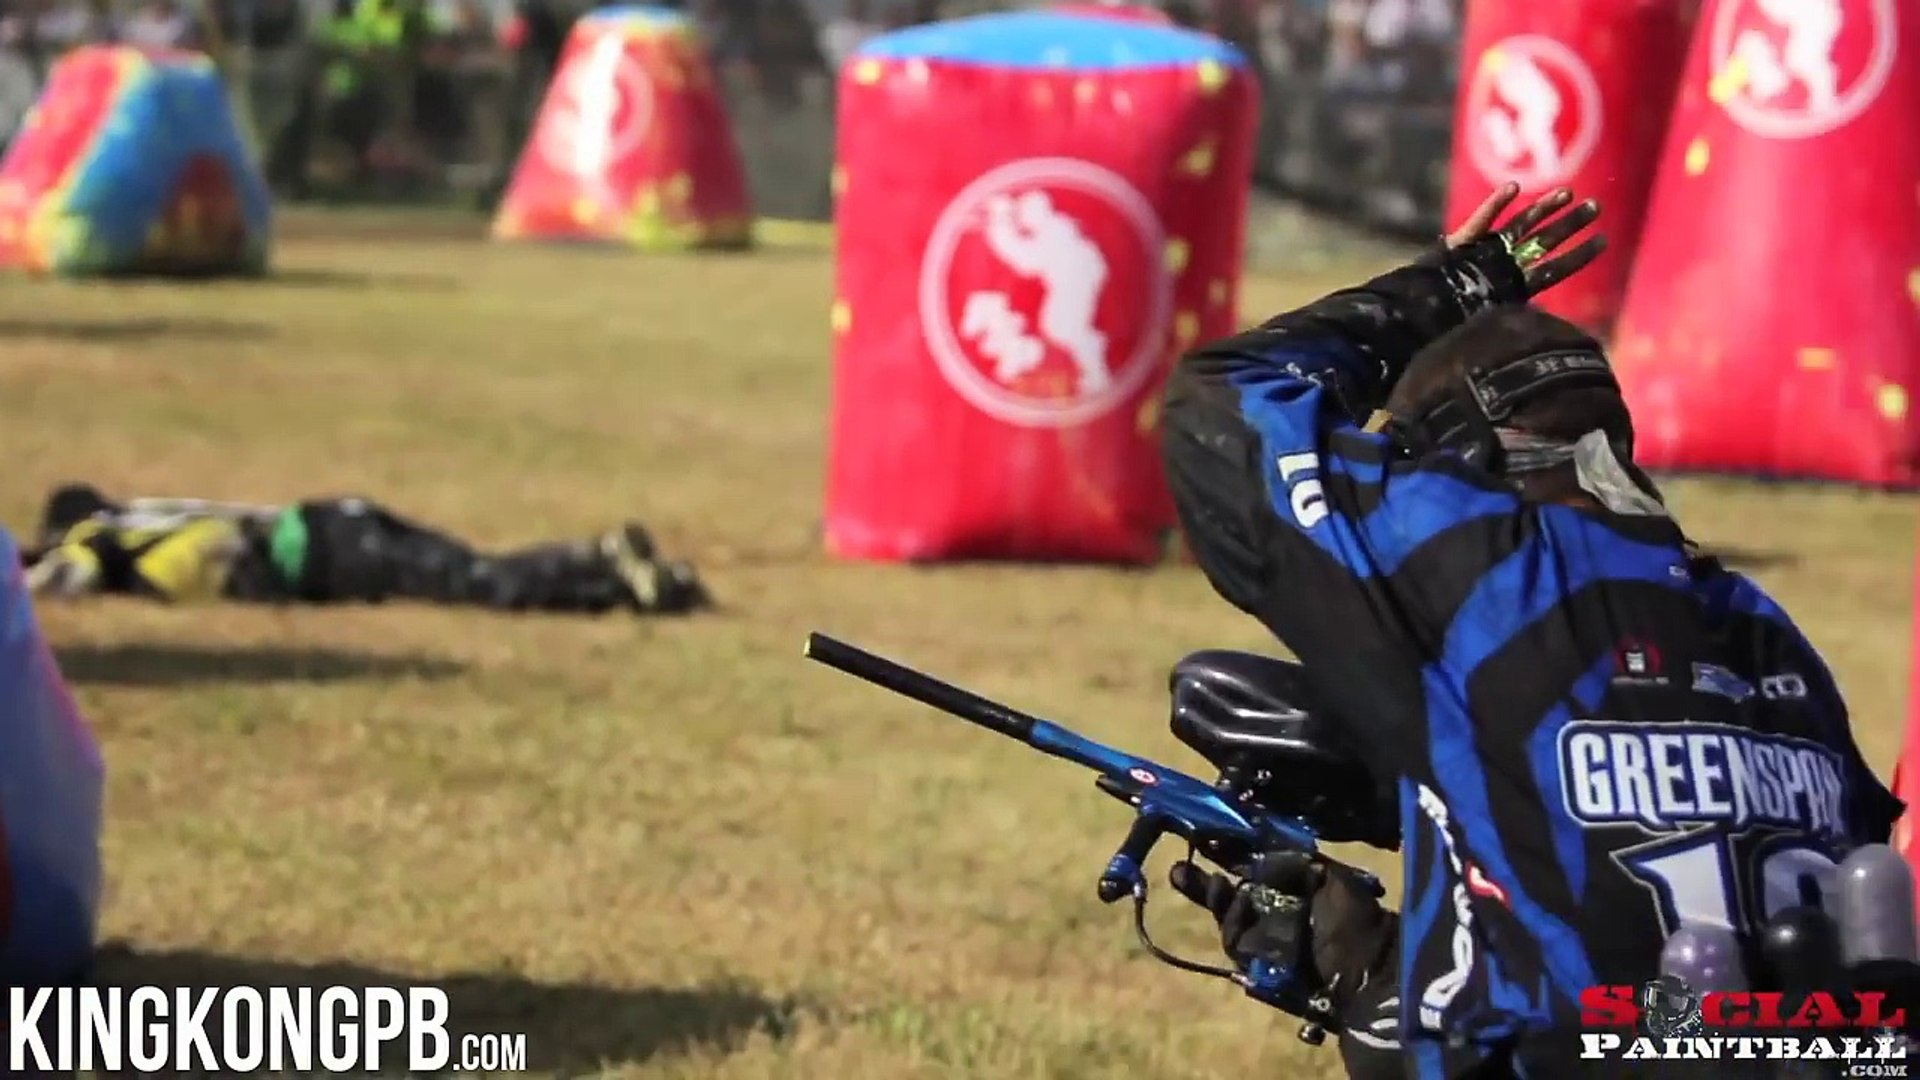 New Psp Galveston Island Dynasty Vs Russian Legion Finals In Raw Hd Paintball Match Video Dailymotion